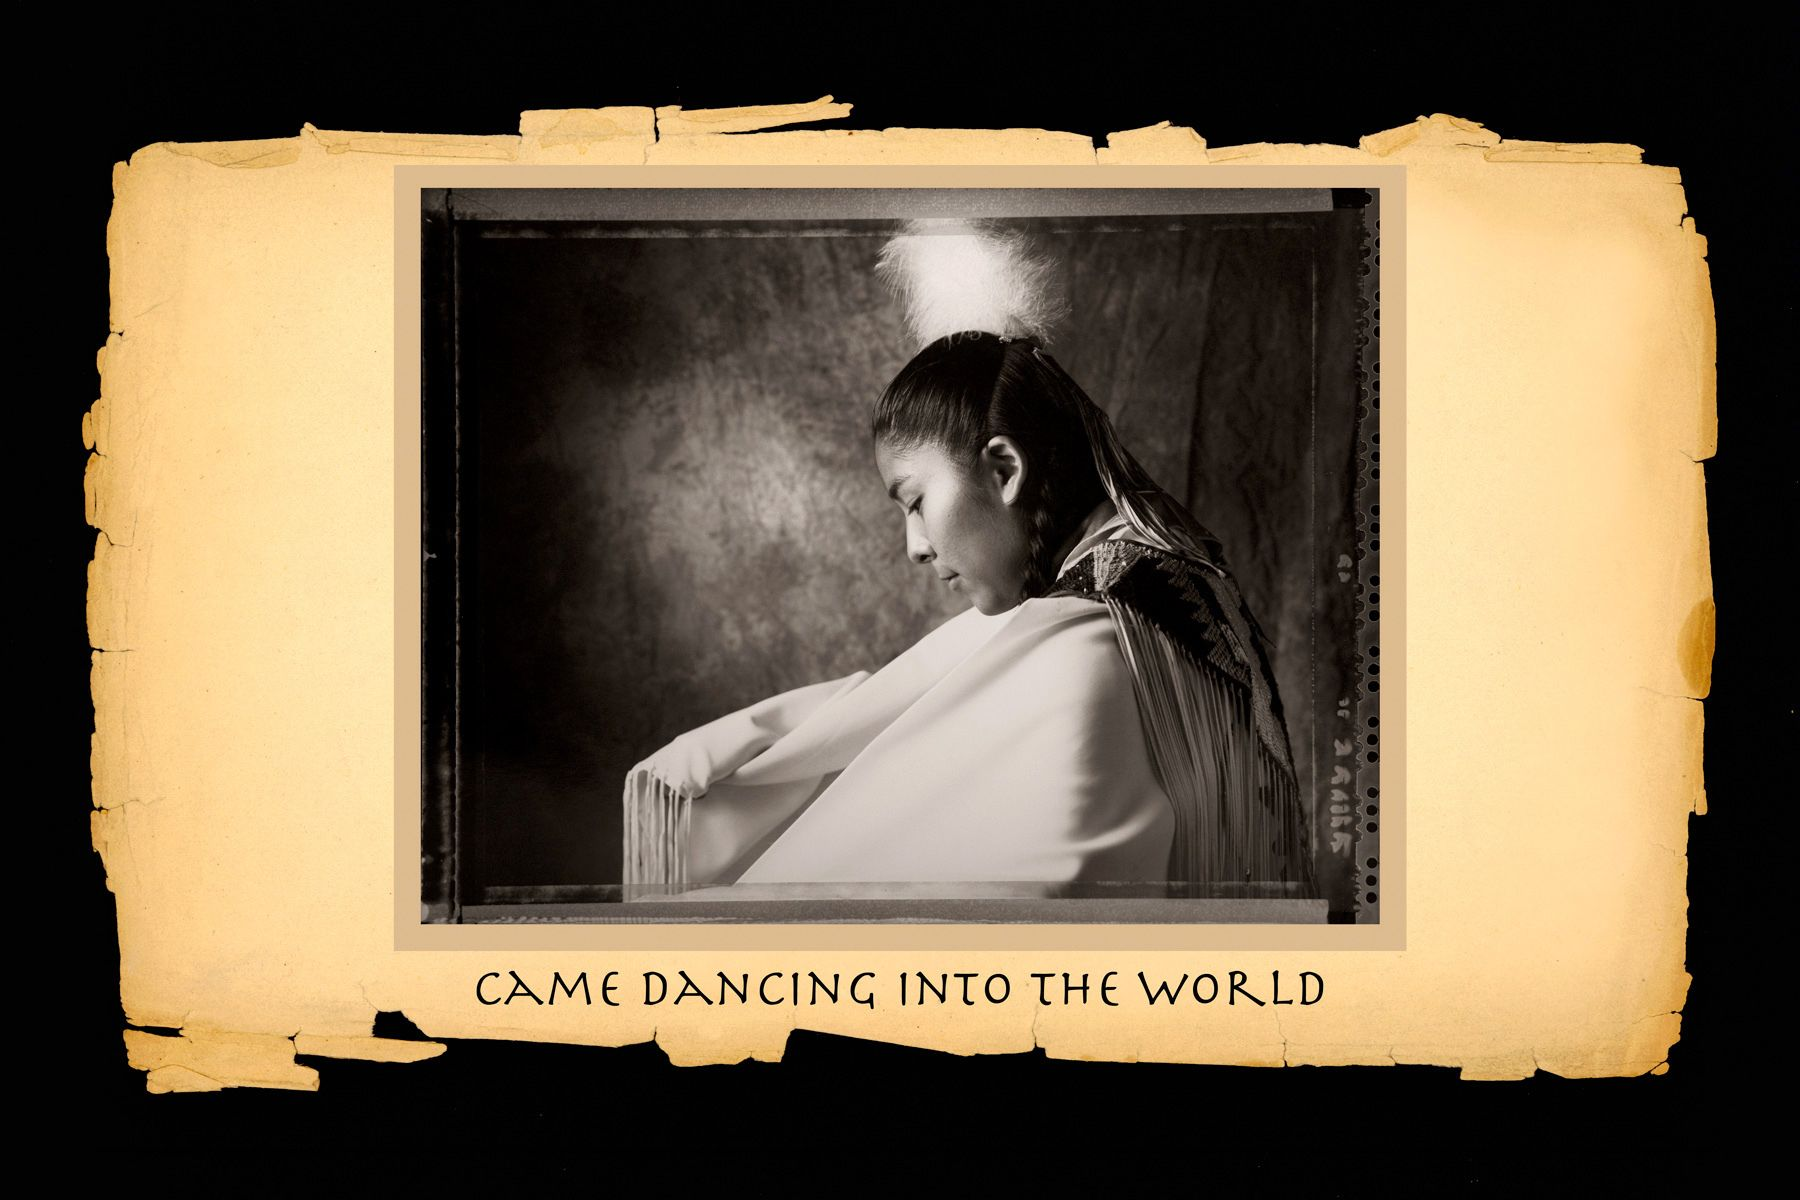 Came Dancing into the World,Comanche